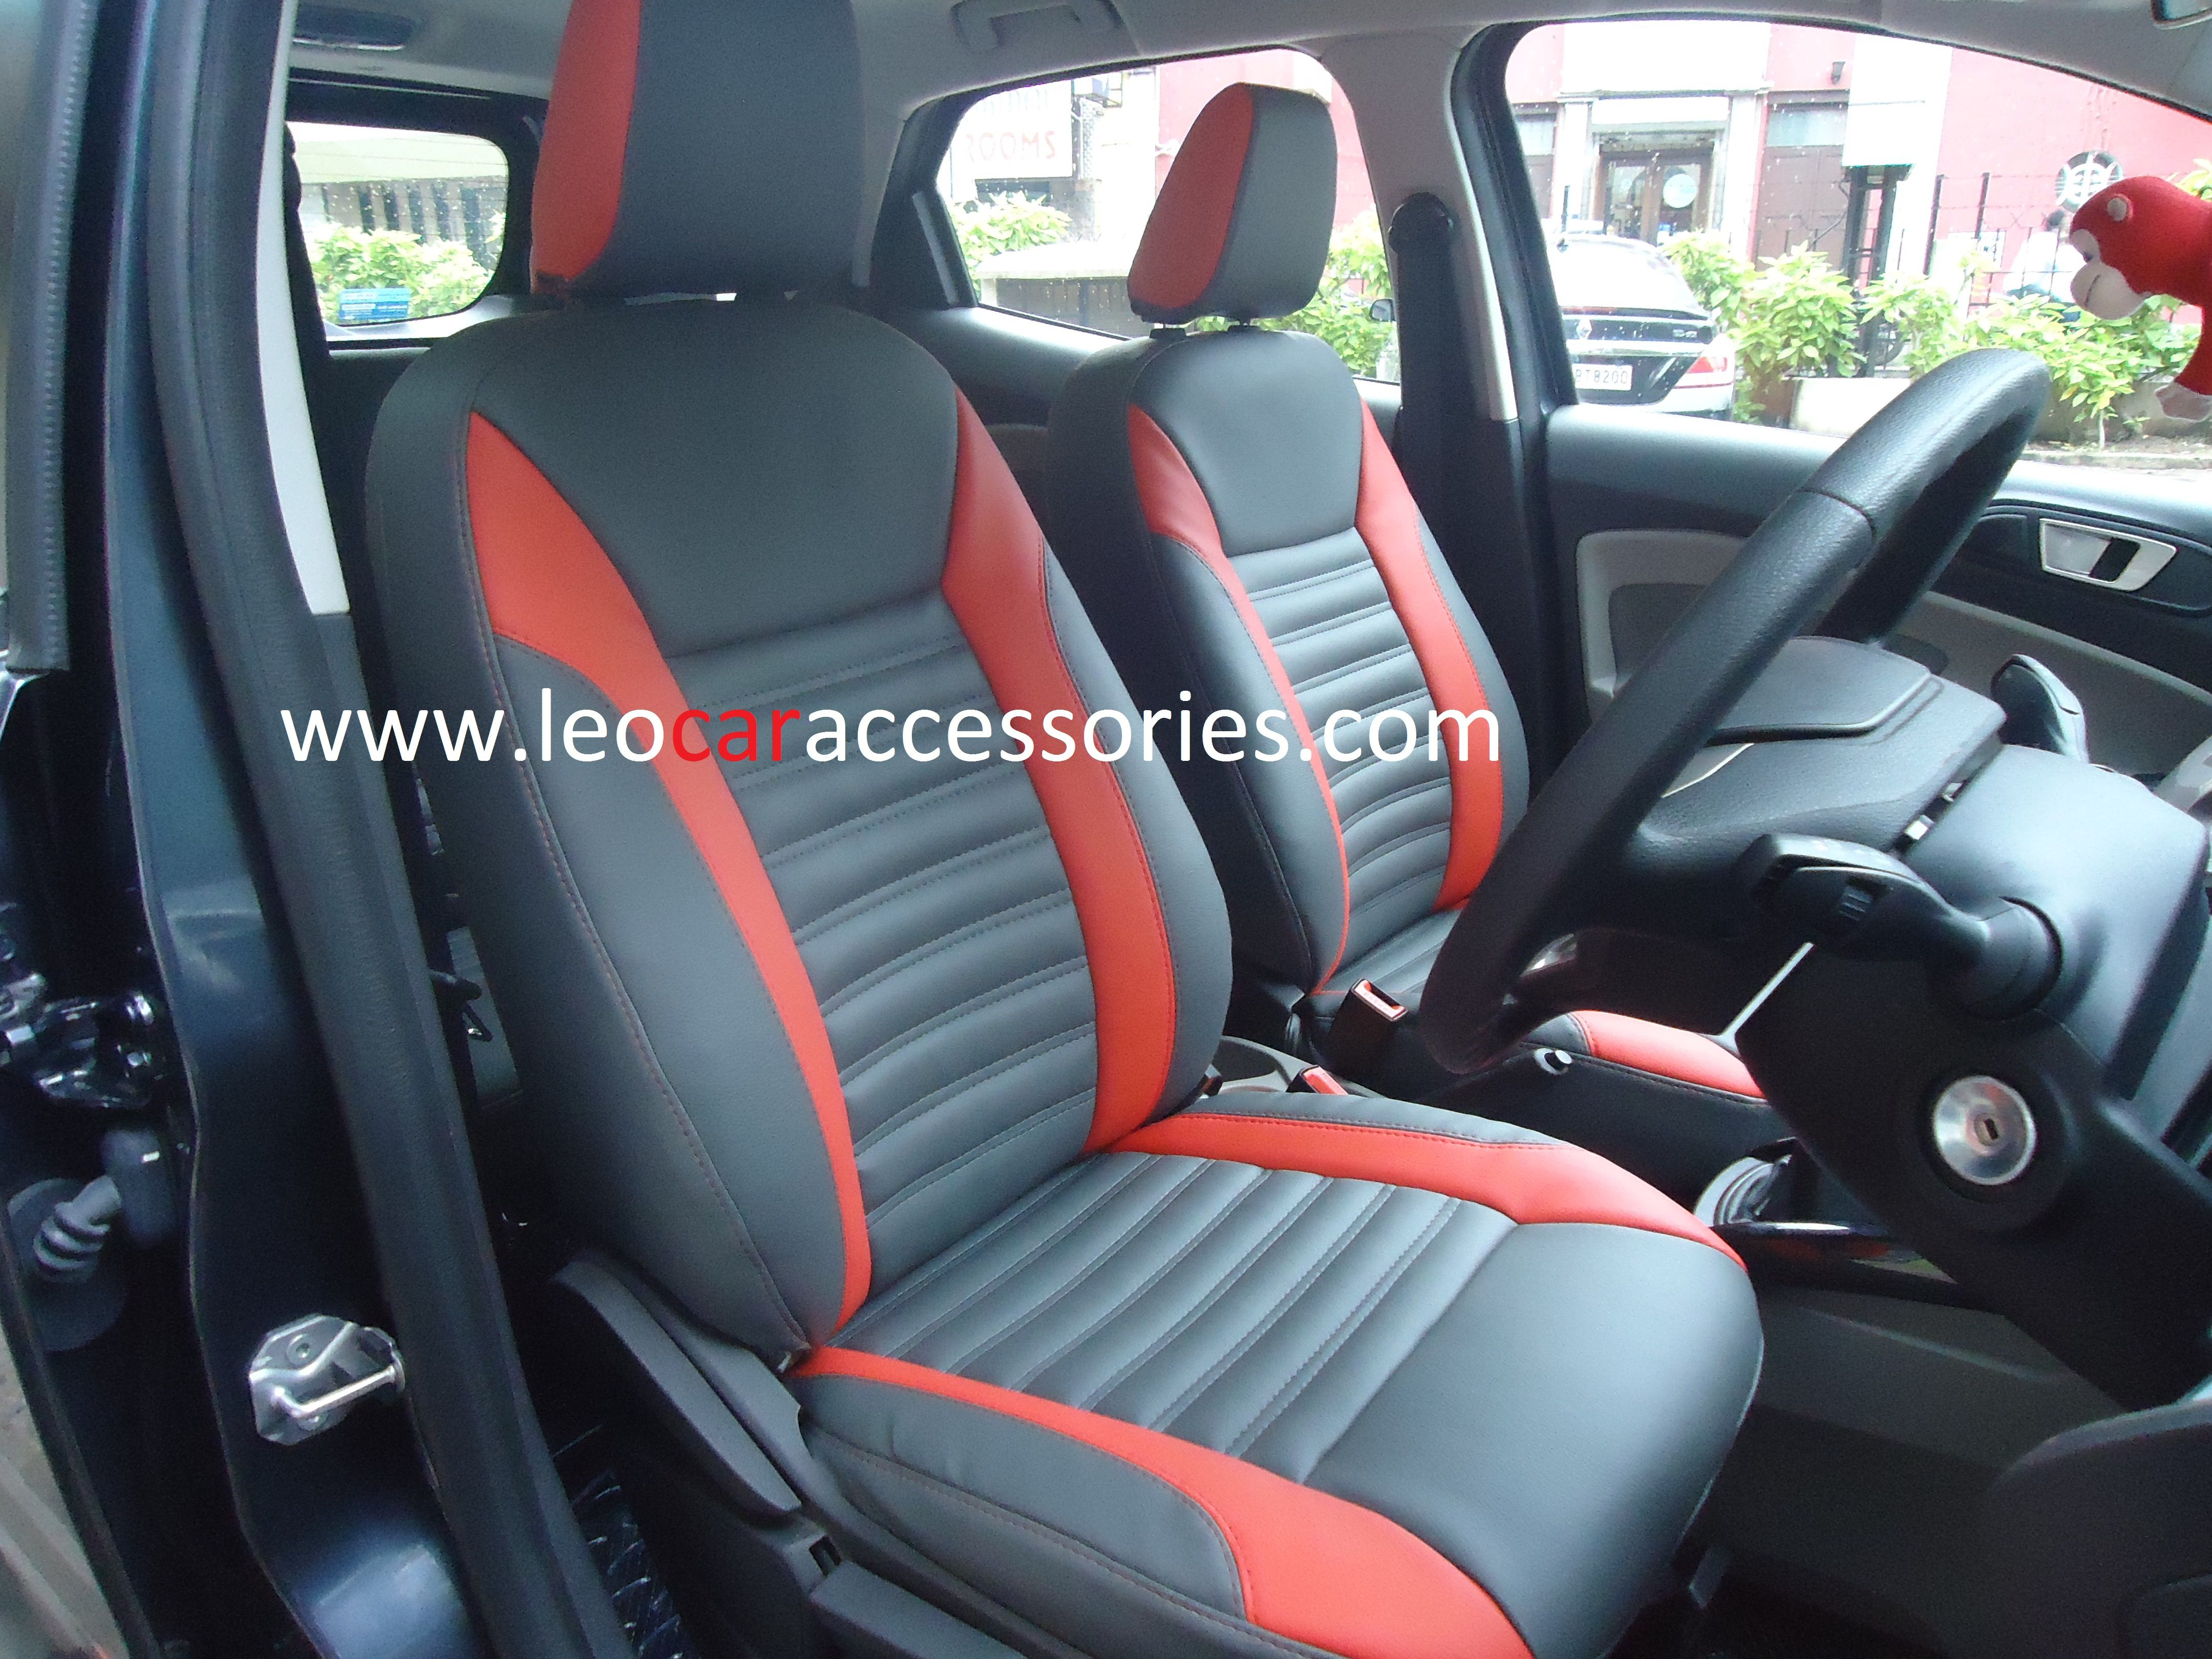 Feather Customized Car Seat Cover Are Available For All Brand Cars